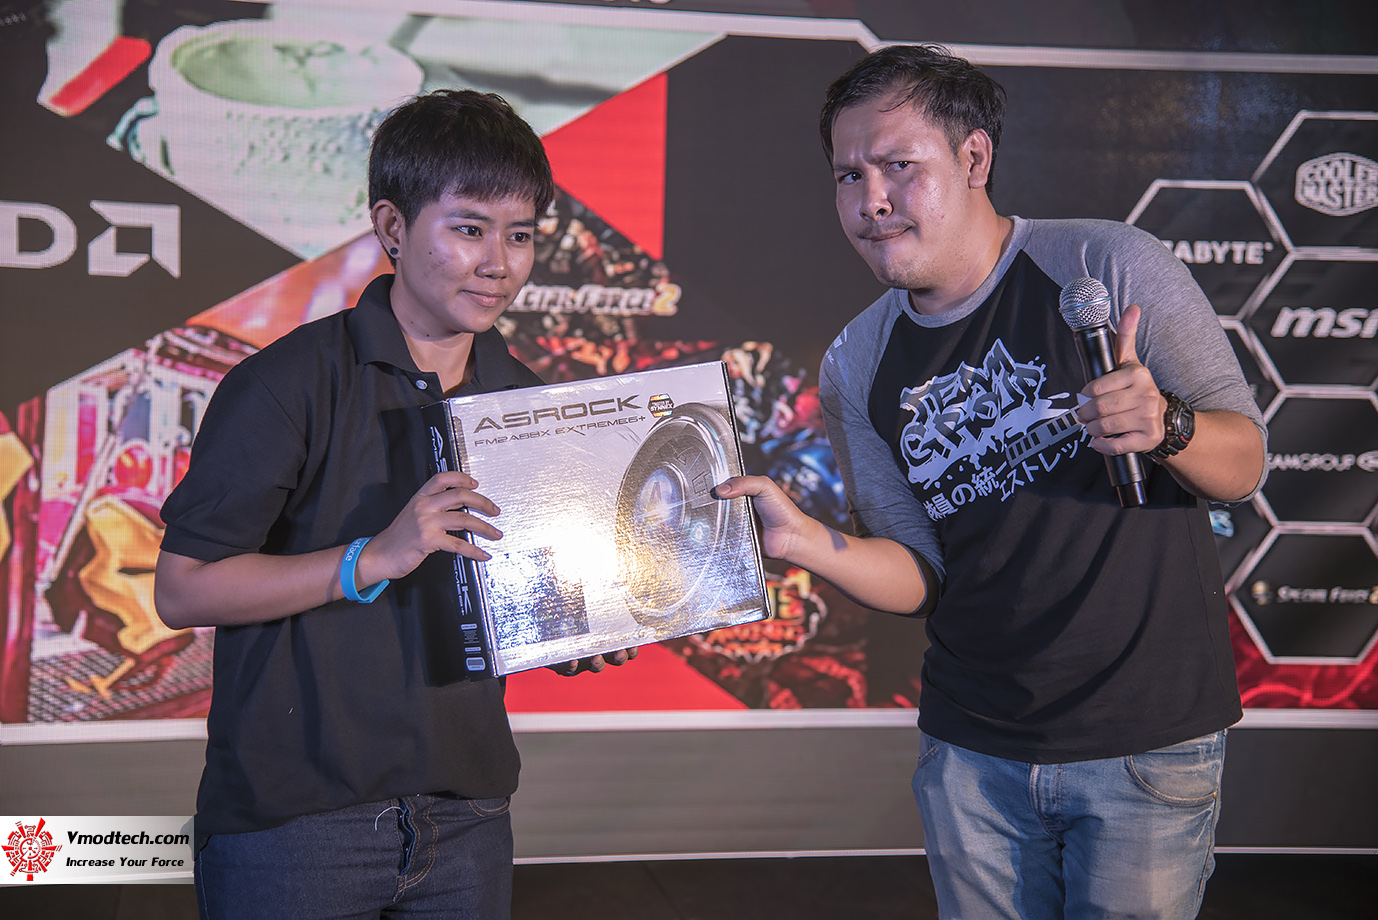 dsc 3234 AMD OMG! Party 2015 (AMD Overclock Modding Gaming Party 2015)